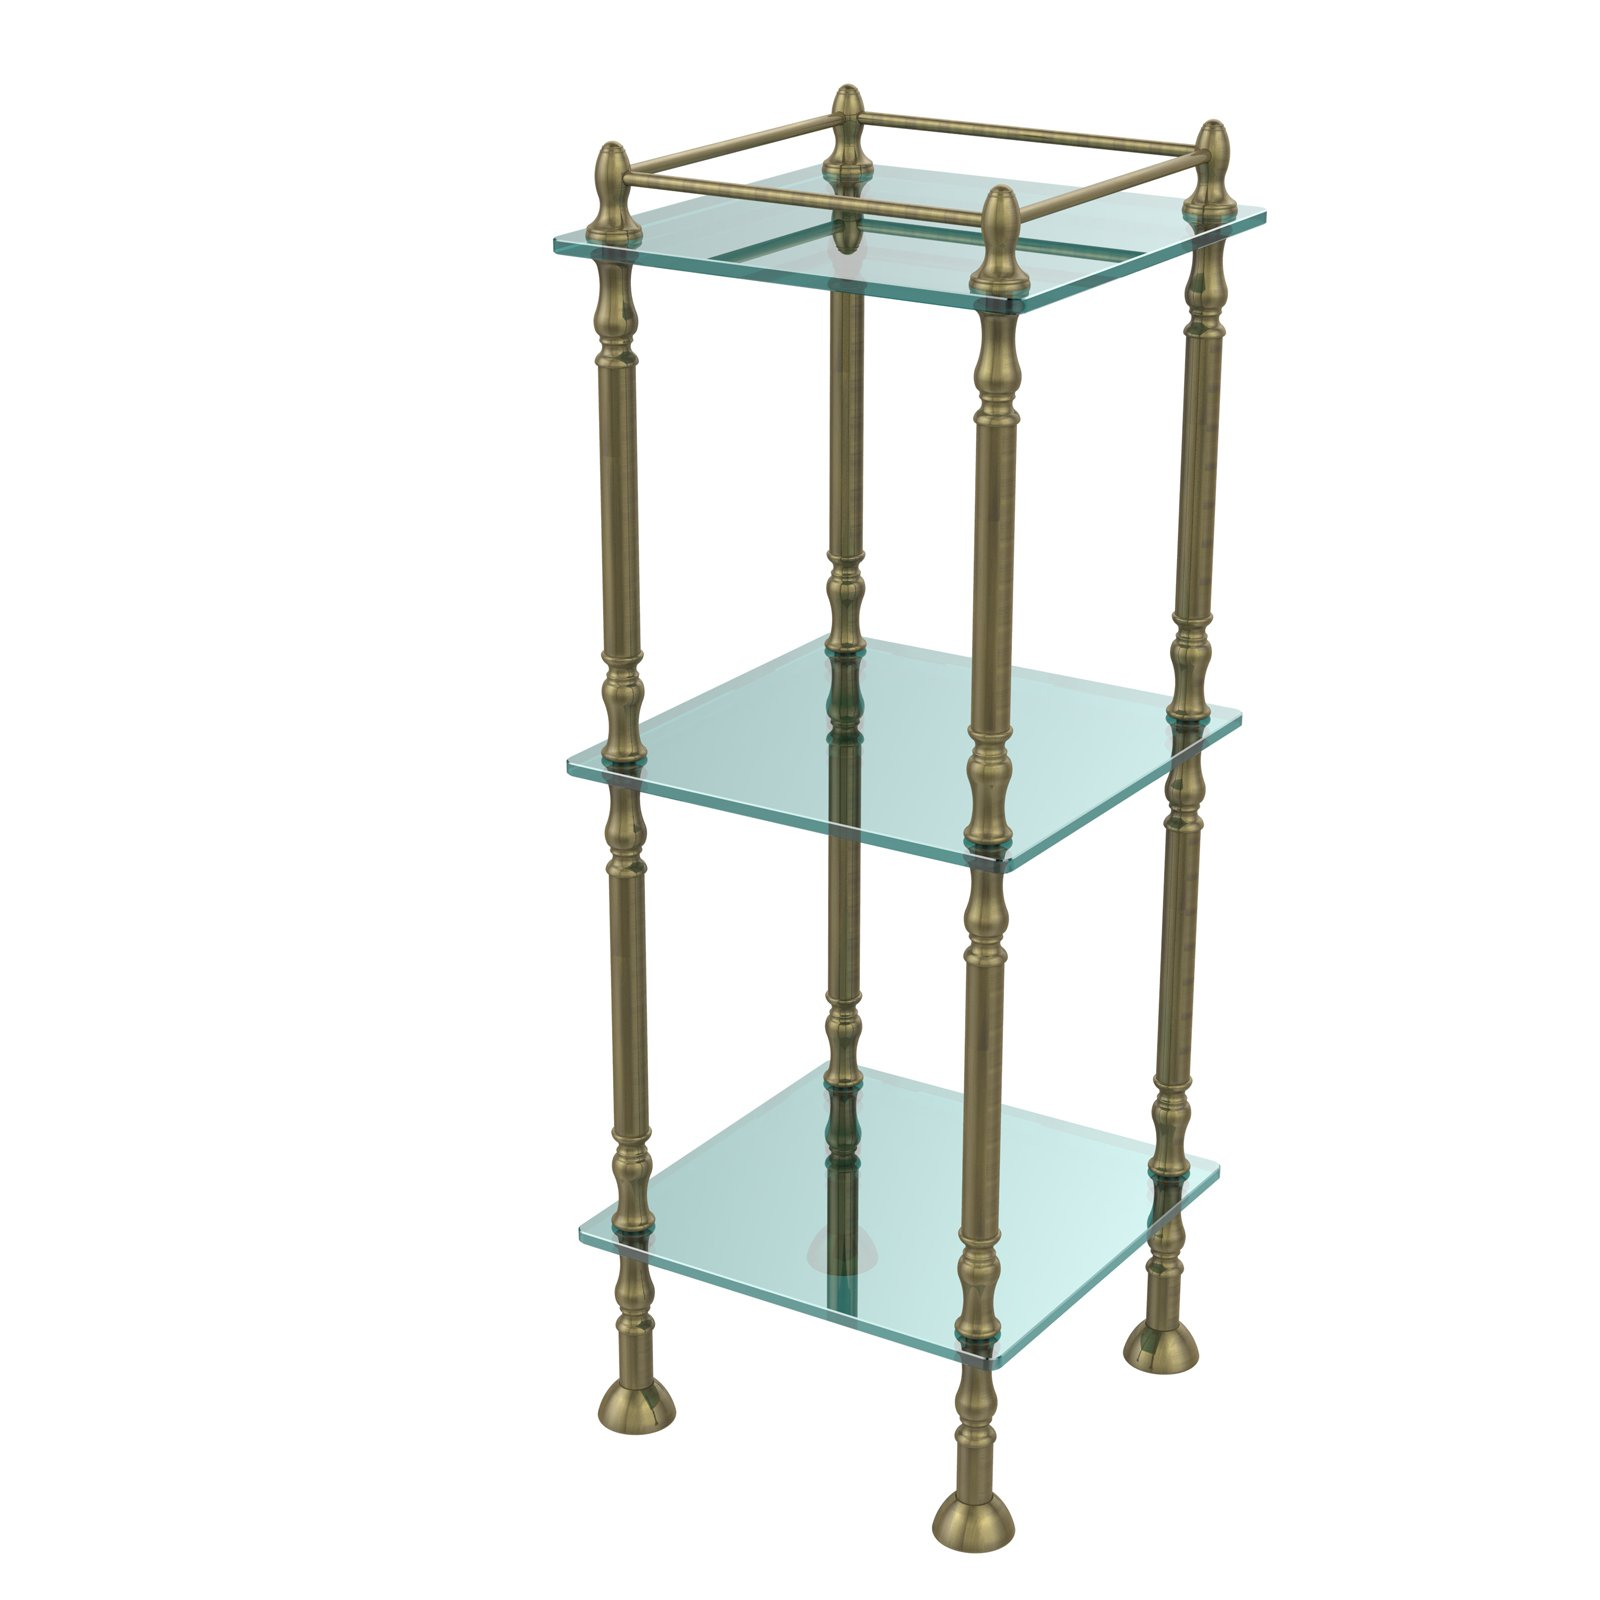 Three Tier Etagere with 14 Inch x 14 Inch Shelves by Avondale Décor